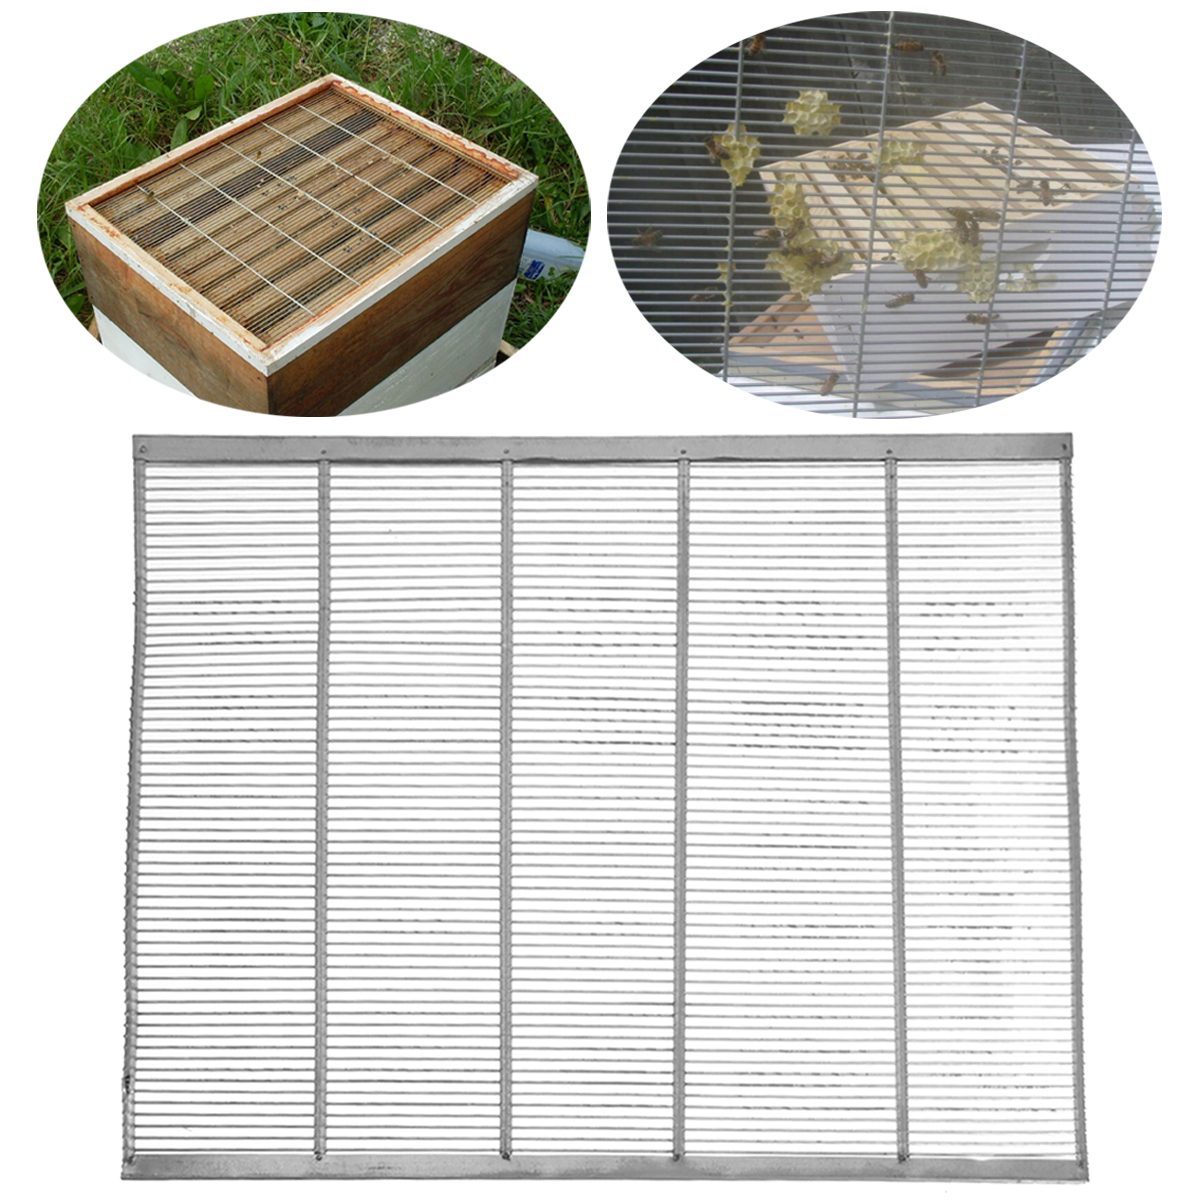 New Arrival Galvanized Iron Frame Bee Queen Excluder Trapping Net Grid Beekeeping Metal Equipment Farming 51x41CM